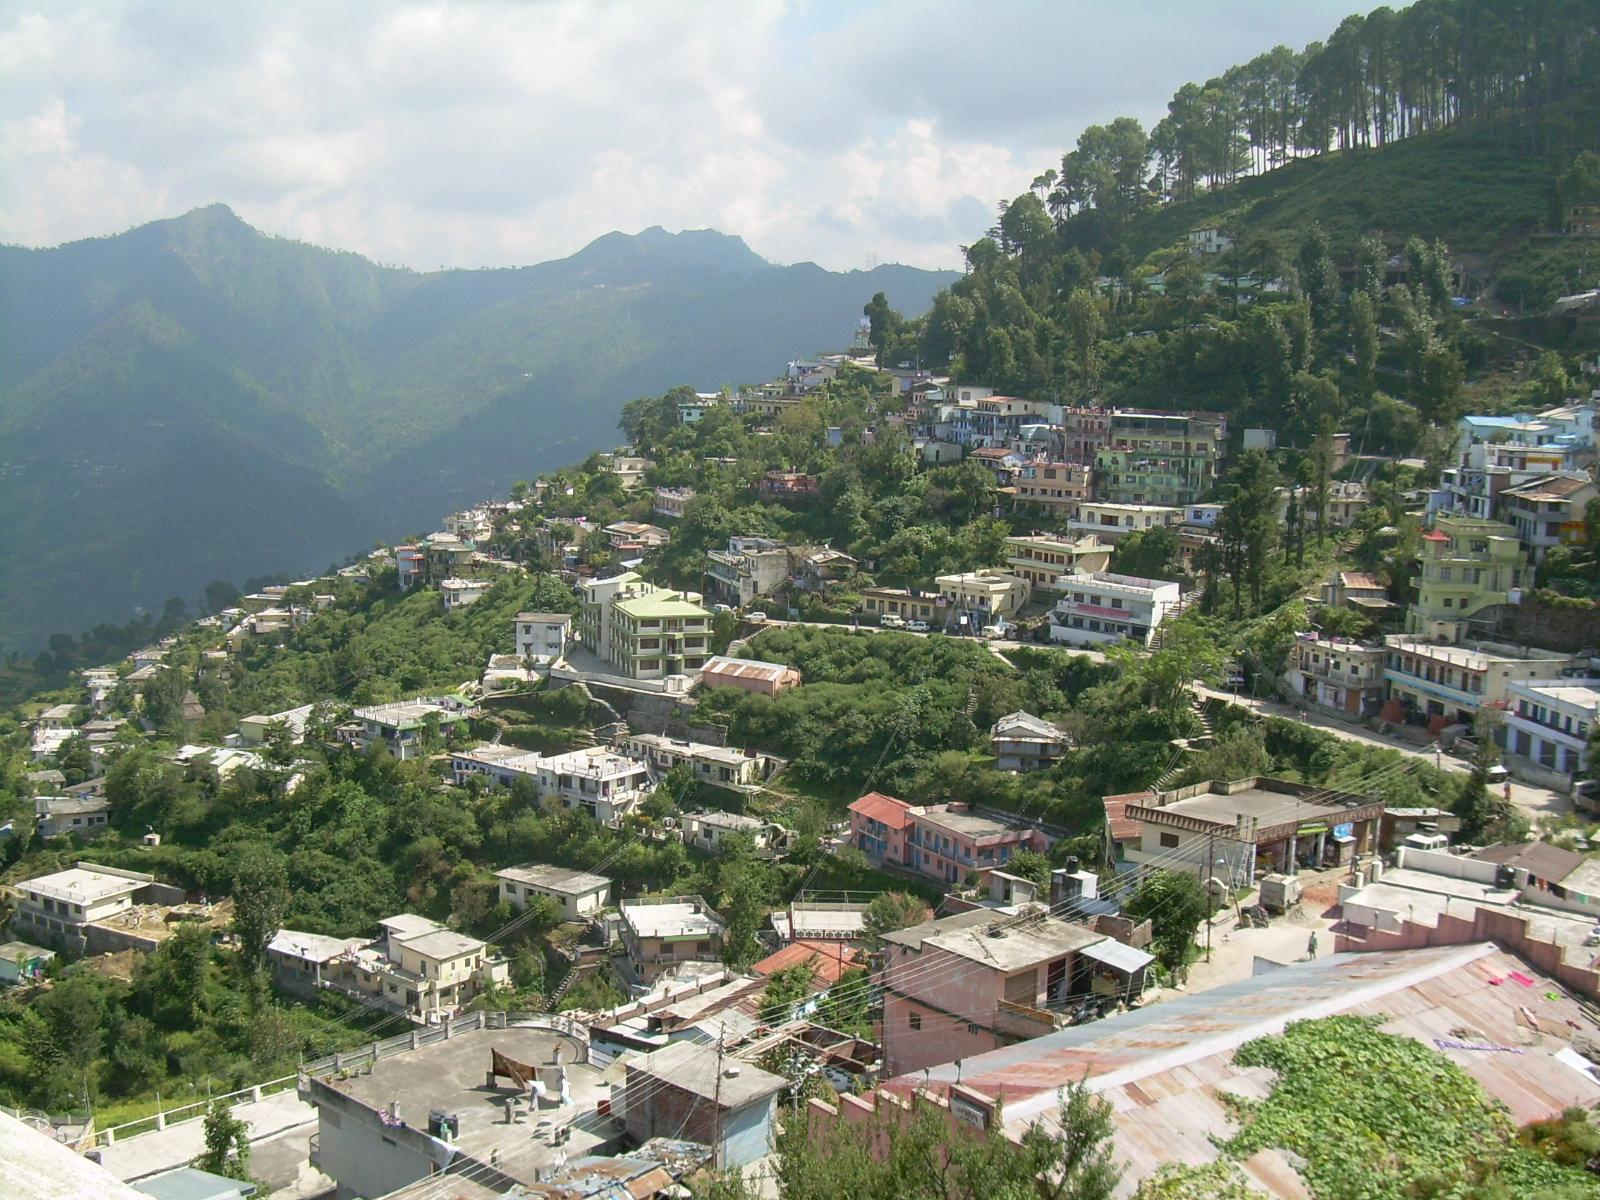 Villages and towns of Uttaranchal: April 2011